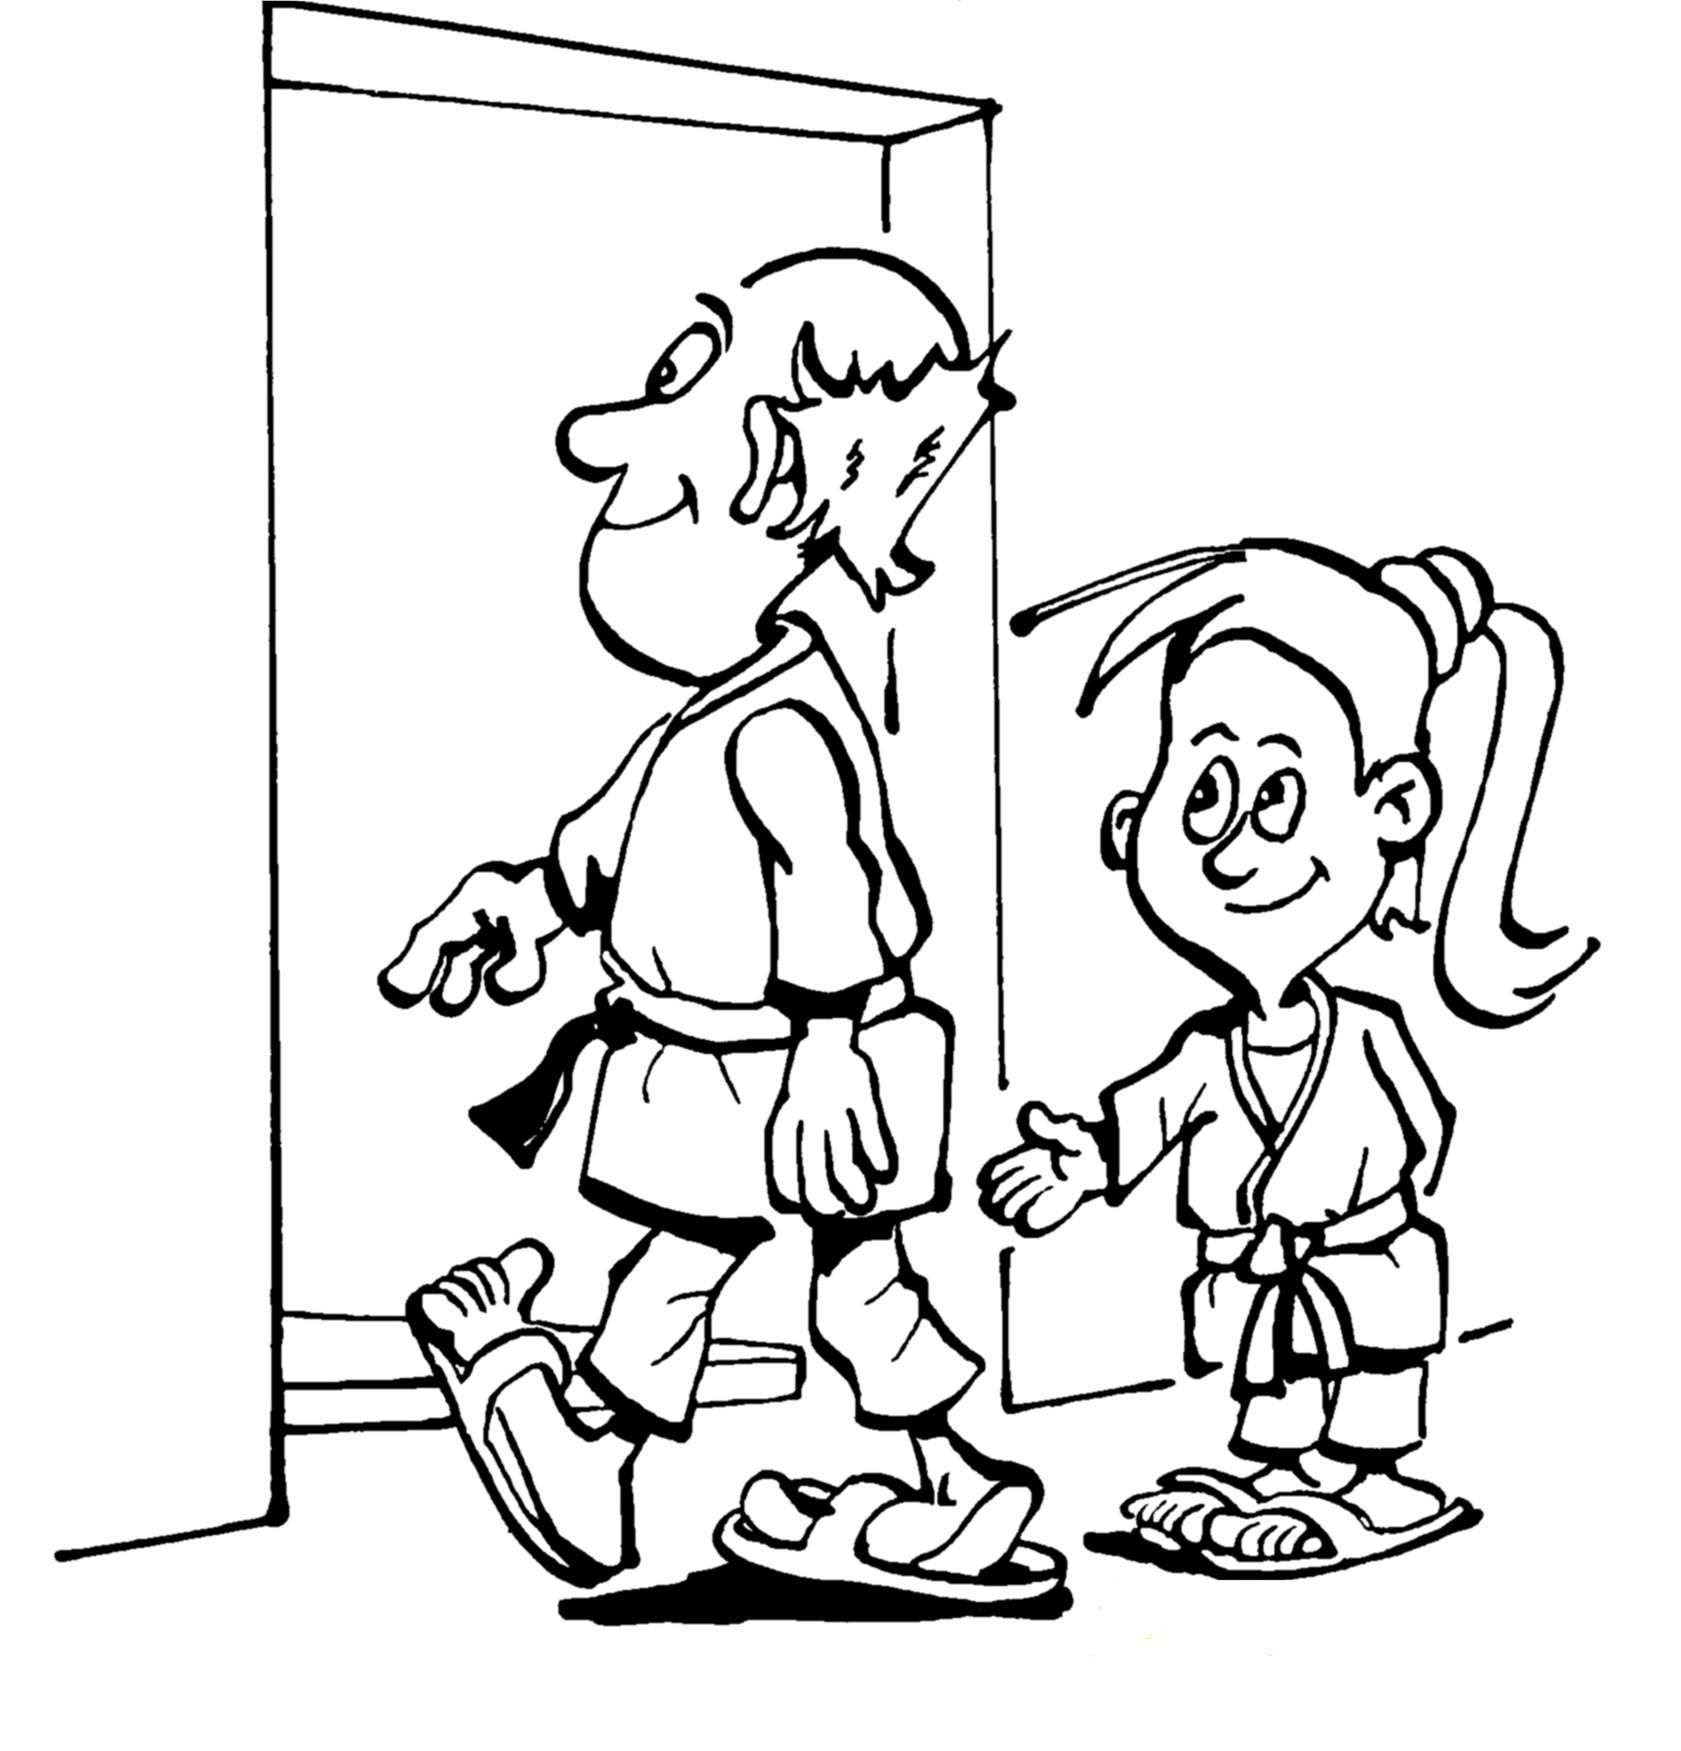 childrens coloring pages for respect - photo#4